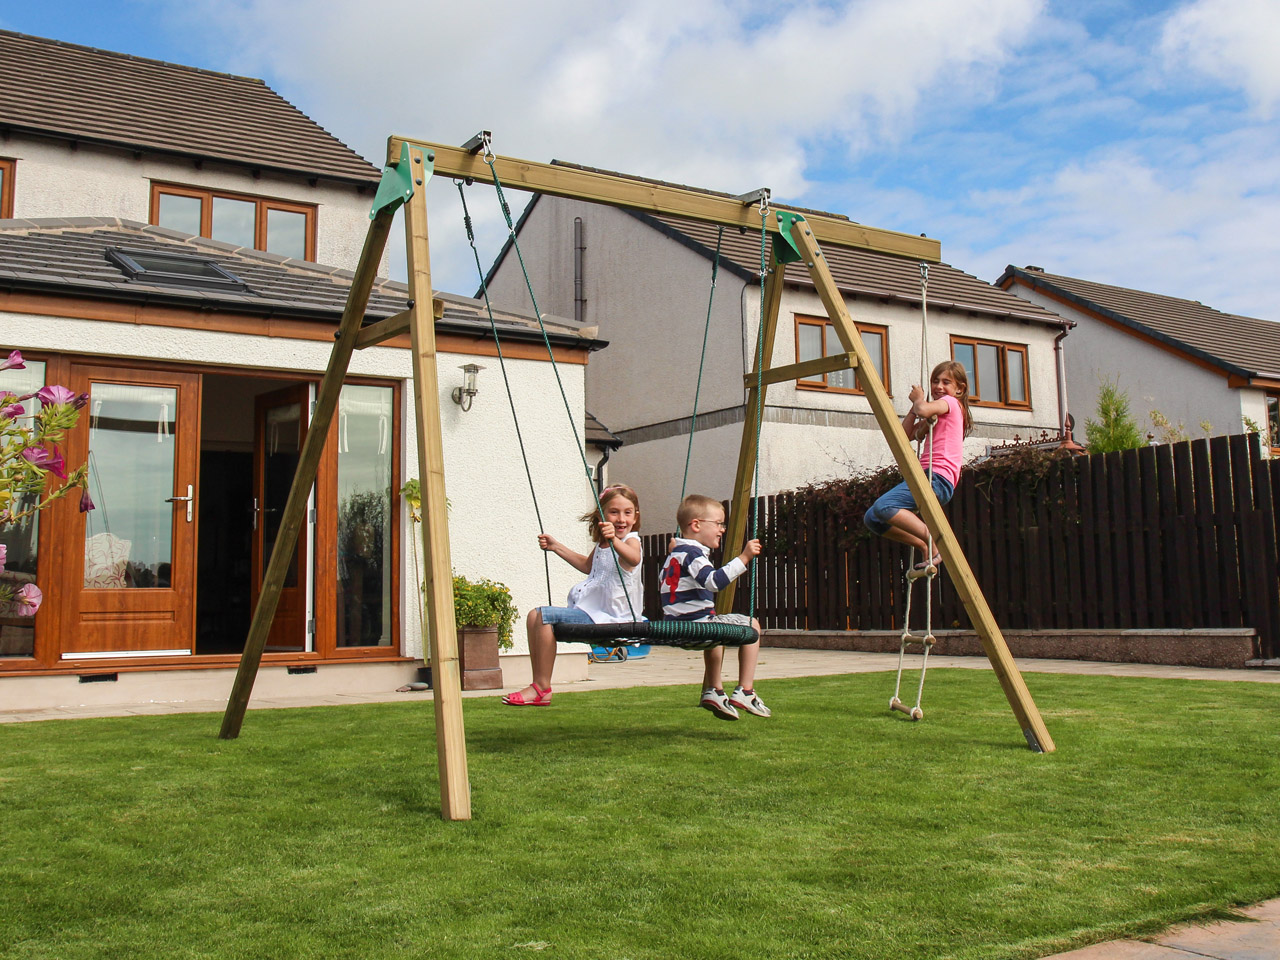 Children S Garden Play Equipment